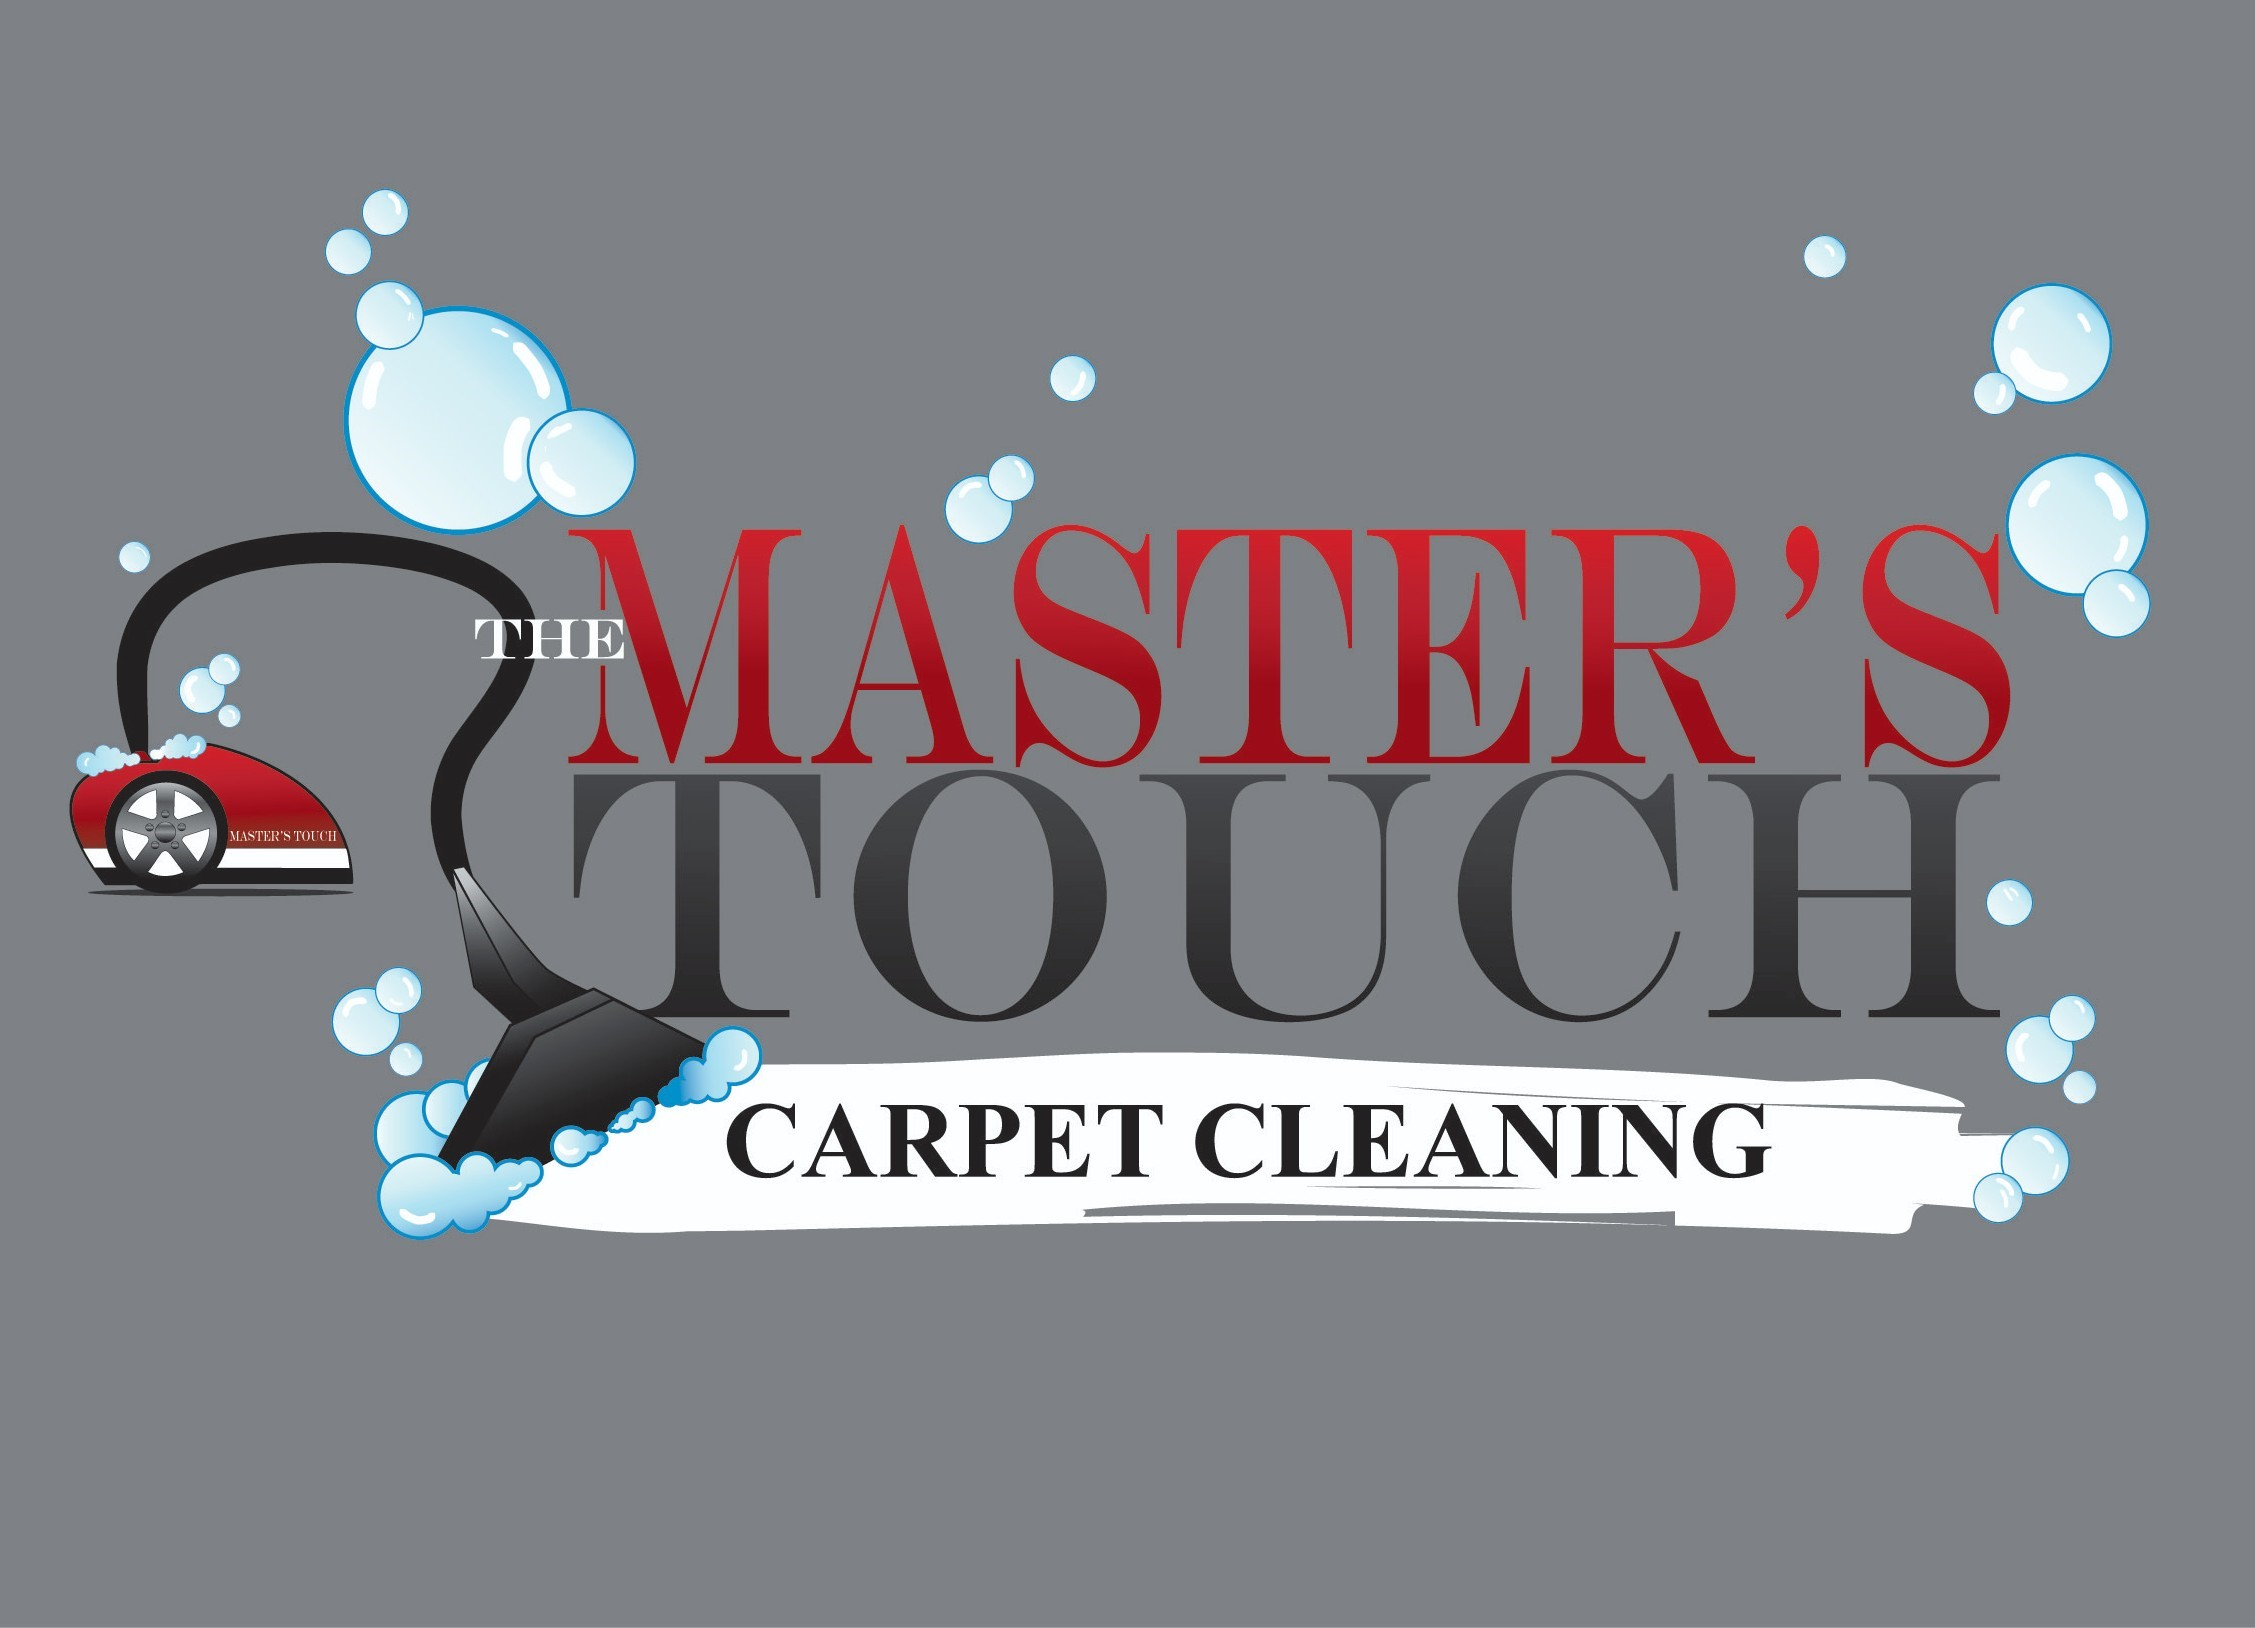 The Master Touch logo